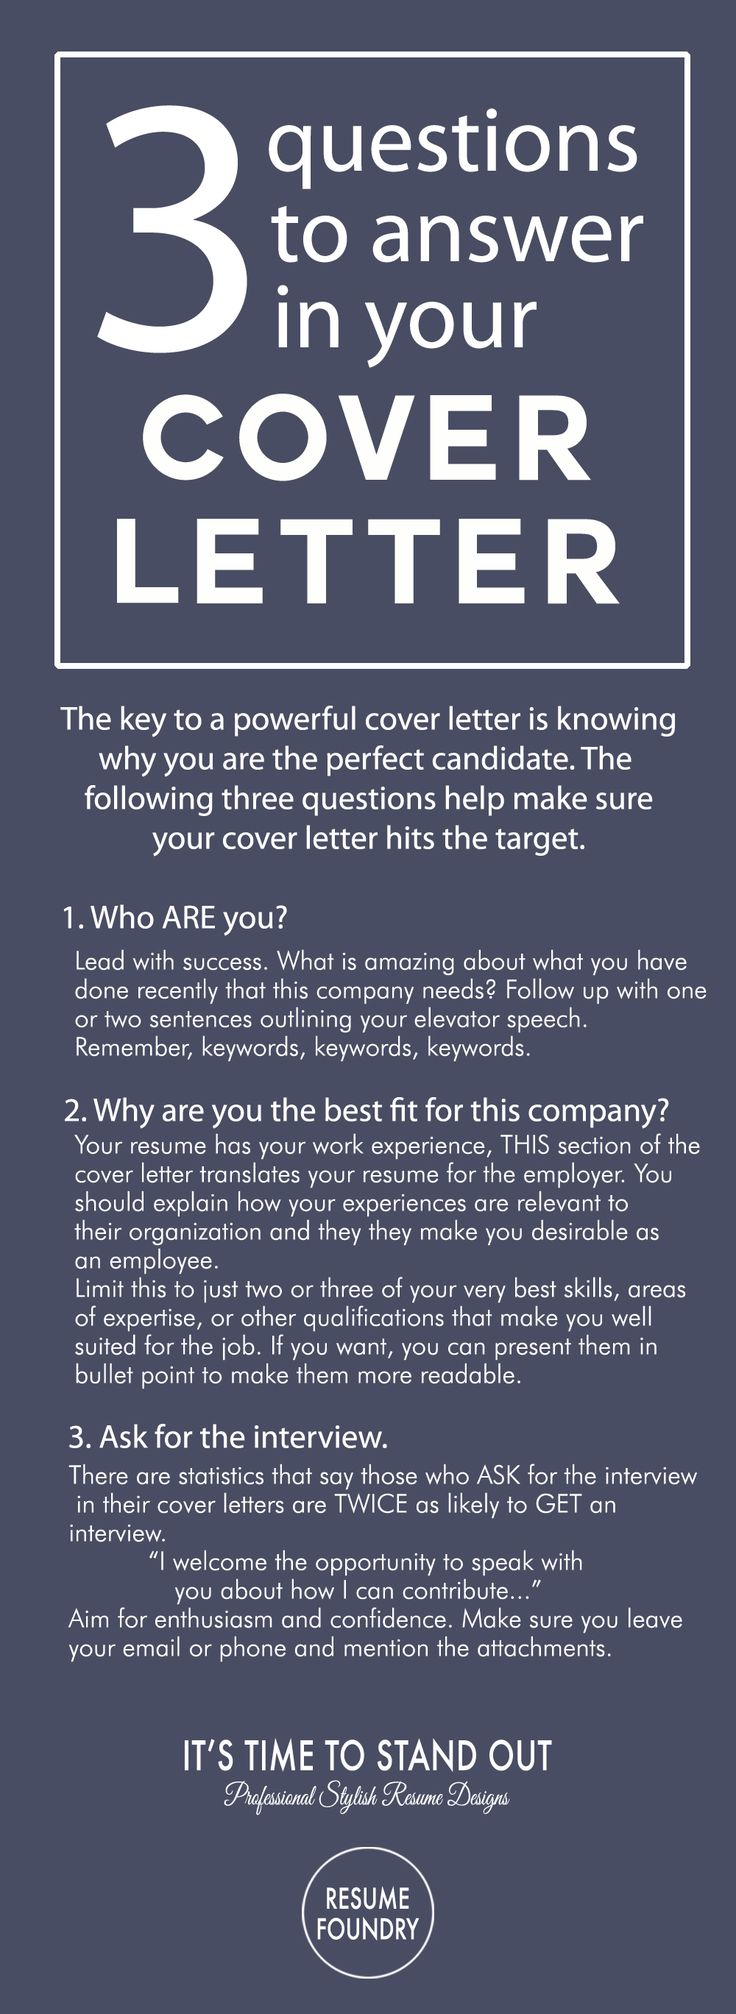 best ideas about job search resume tips job the resume deliver it to your dream job and voila new beginnings we look forward to your success stories of landing your new job and feel